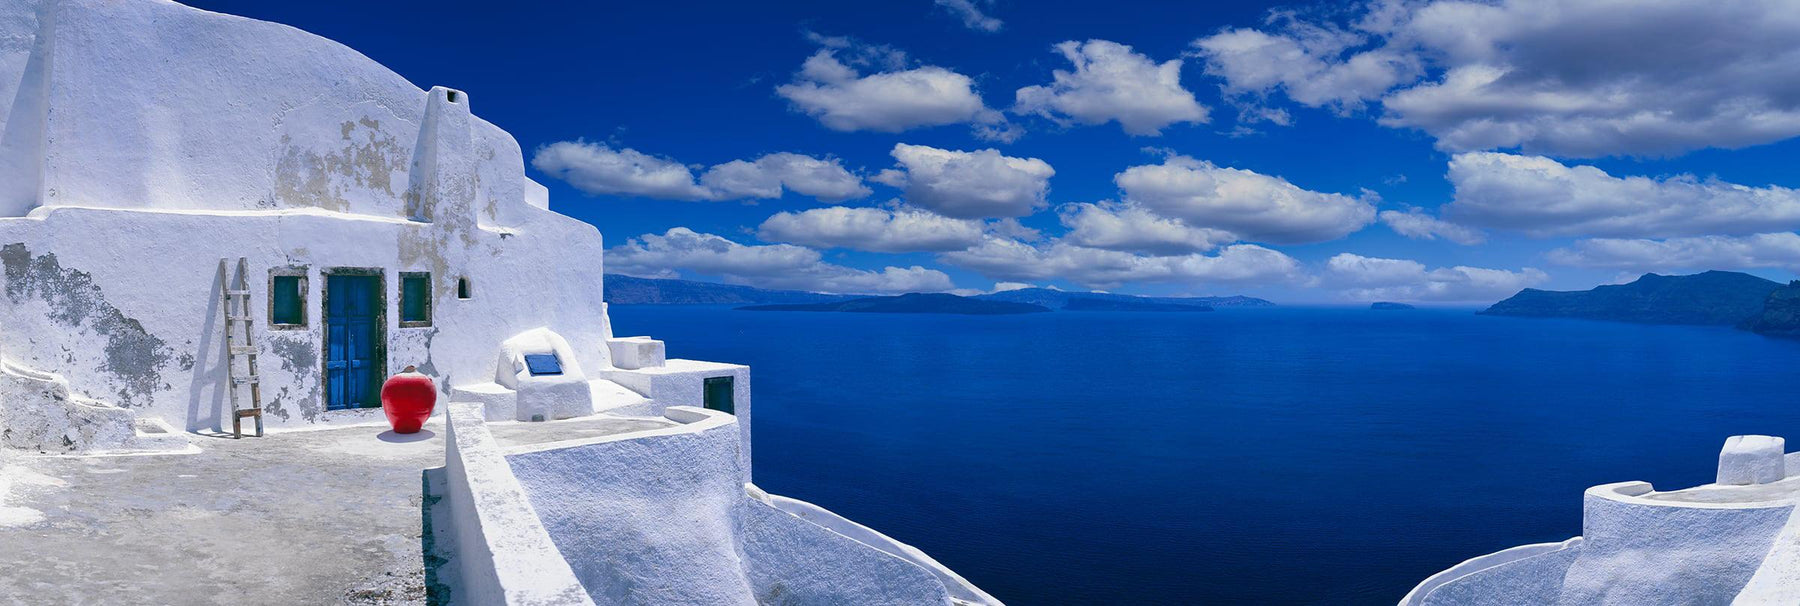 White plastered house and courtyard overlooking the blue ocean and cloudy skies of Santorini Greece